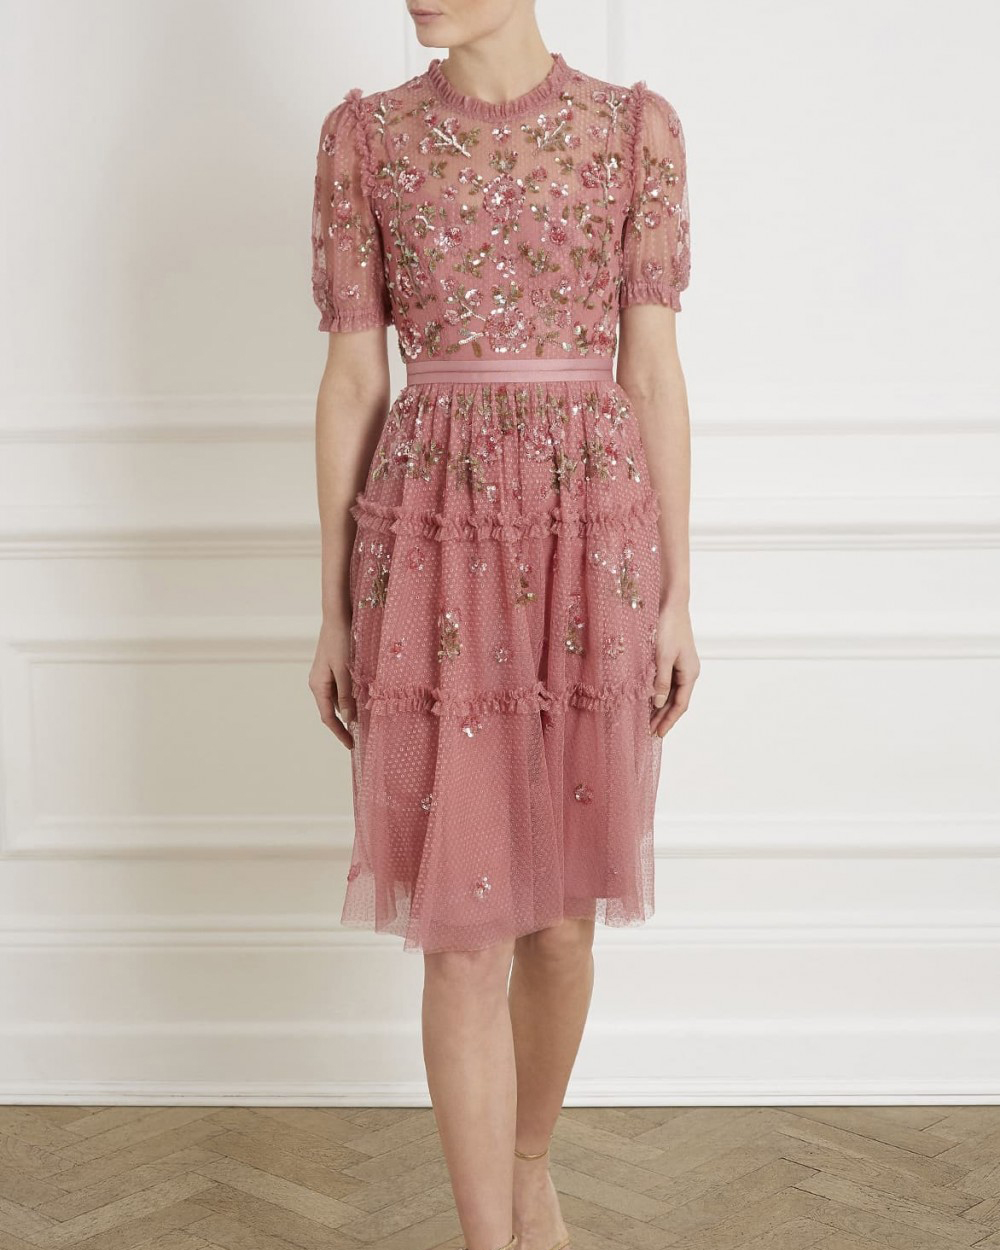 high neck puffed sleeve pink midi dress with sequin and floral embellishments